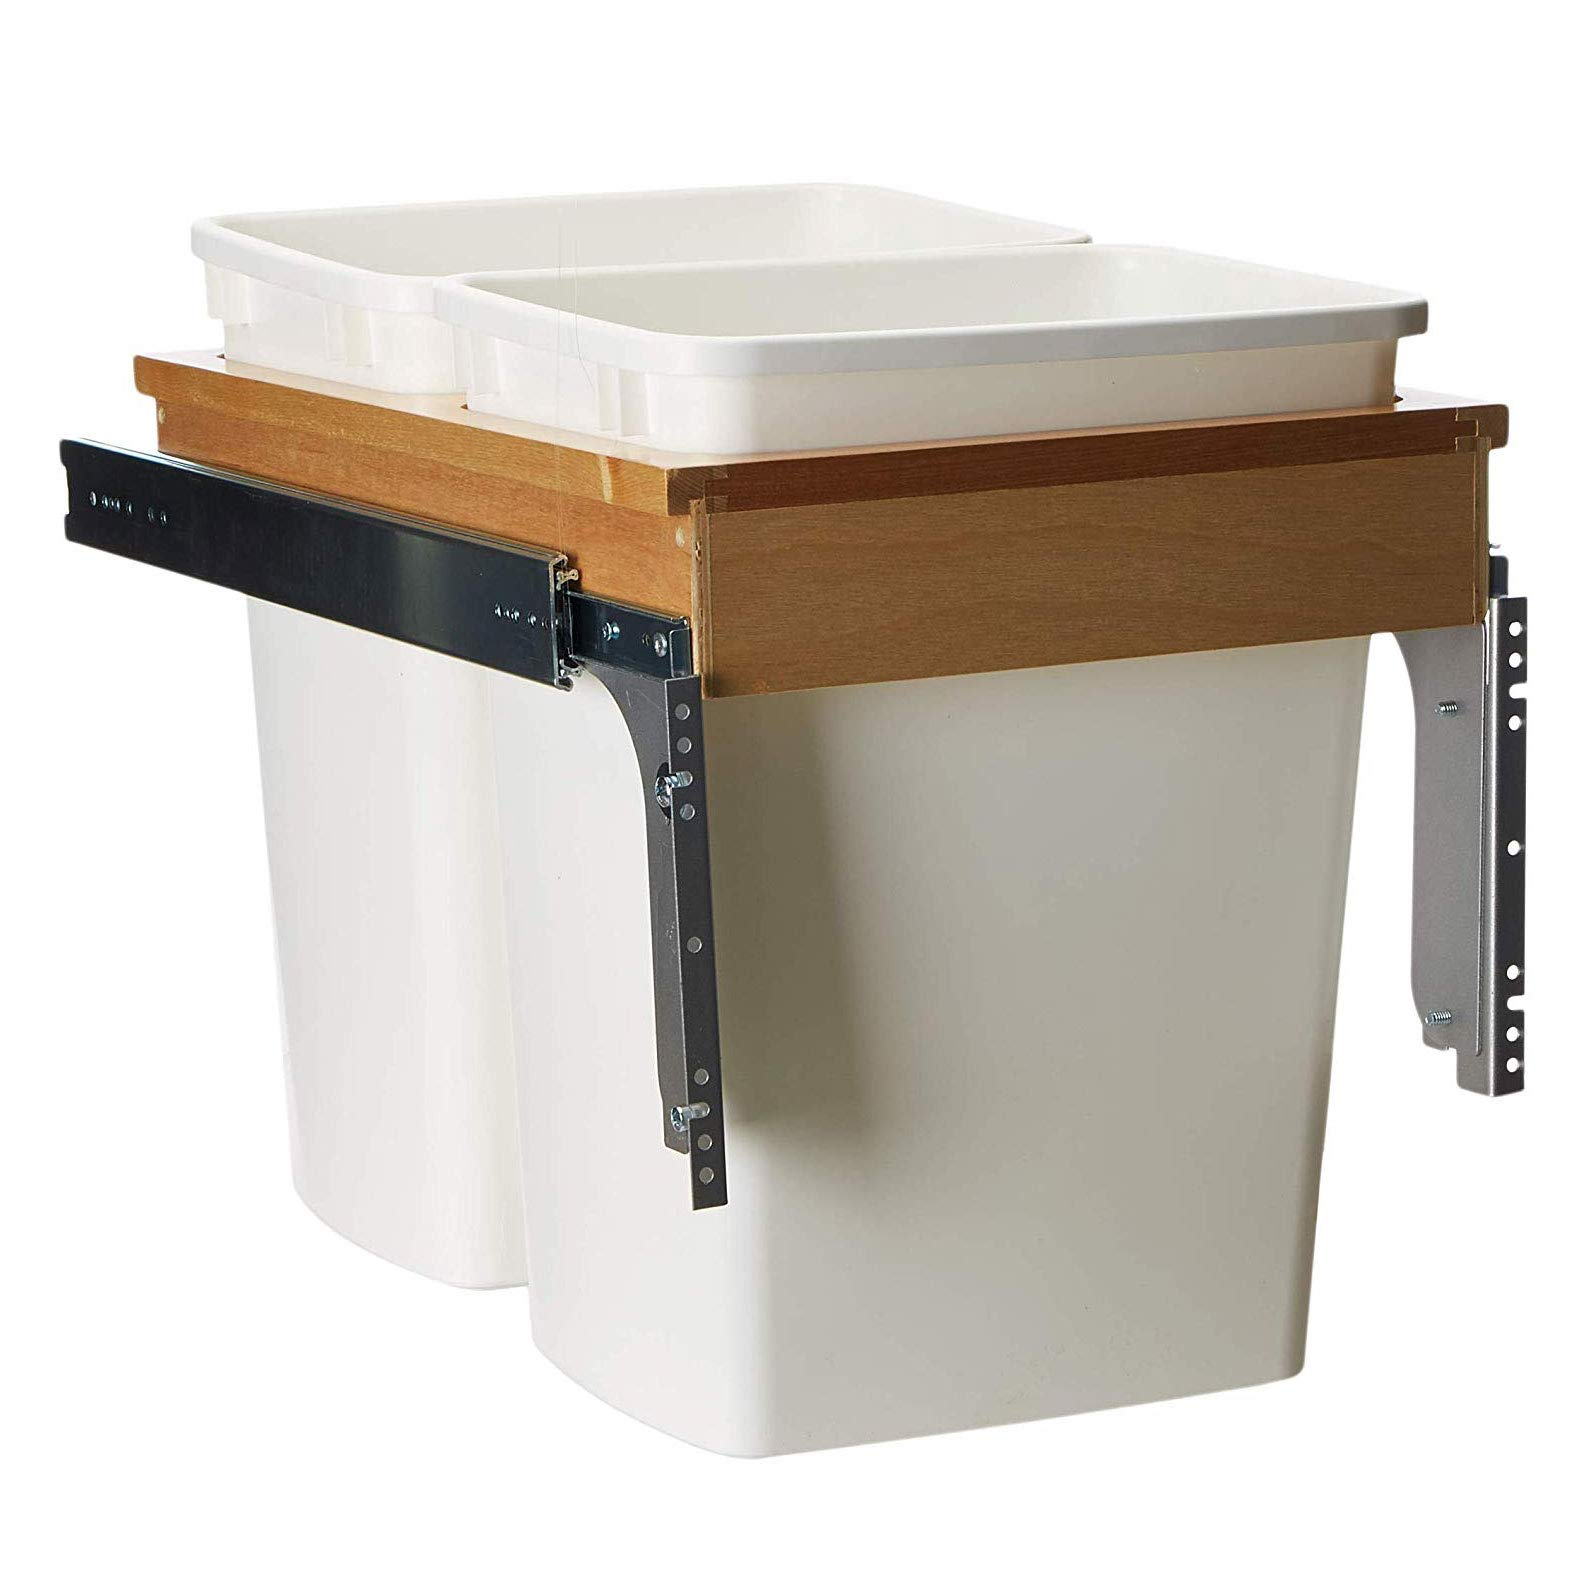 Rev-A-Shelf 35 Quart Pull Out Sliding Double Waste Trash Container Bin, White by Rev-A-Shelf